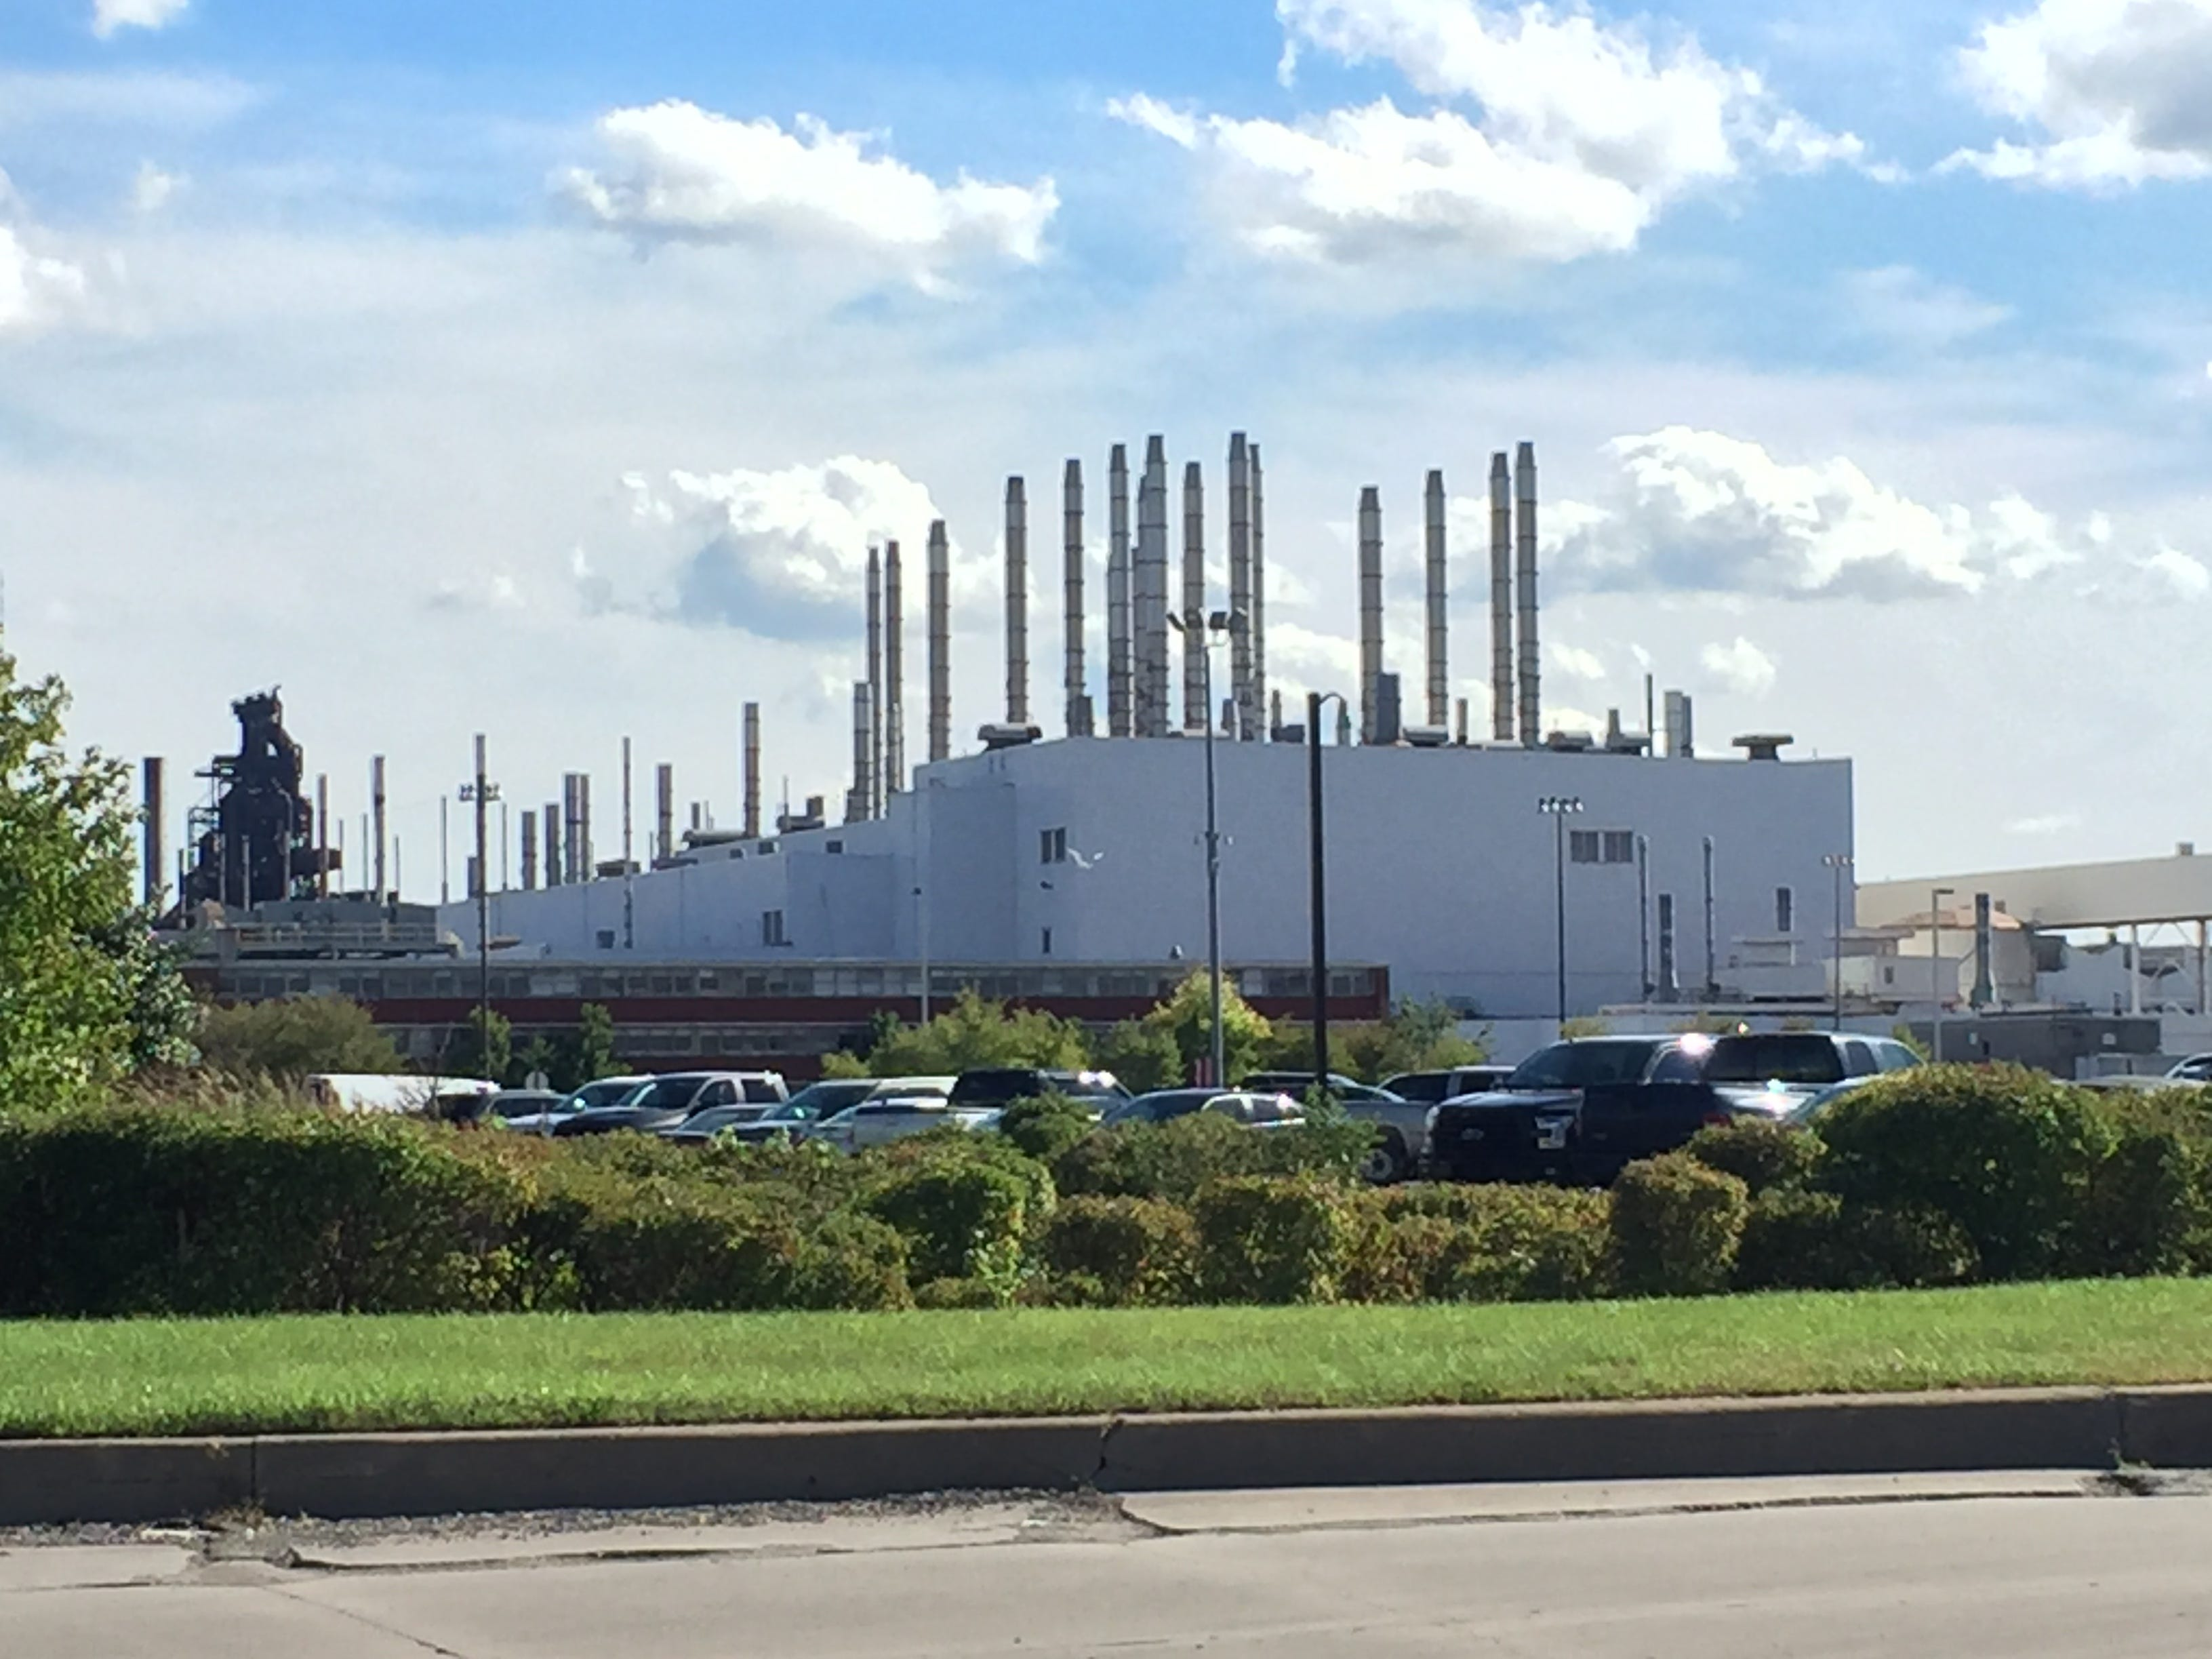 The 7,000 employees of the Ford River Rouge Complex on Thursday, Sept. 27, 2018, will celebrate the facility's 100th anniversary. It is the oldest continuously operating auto plant in the nation.